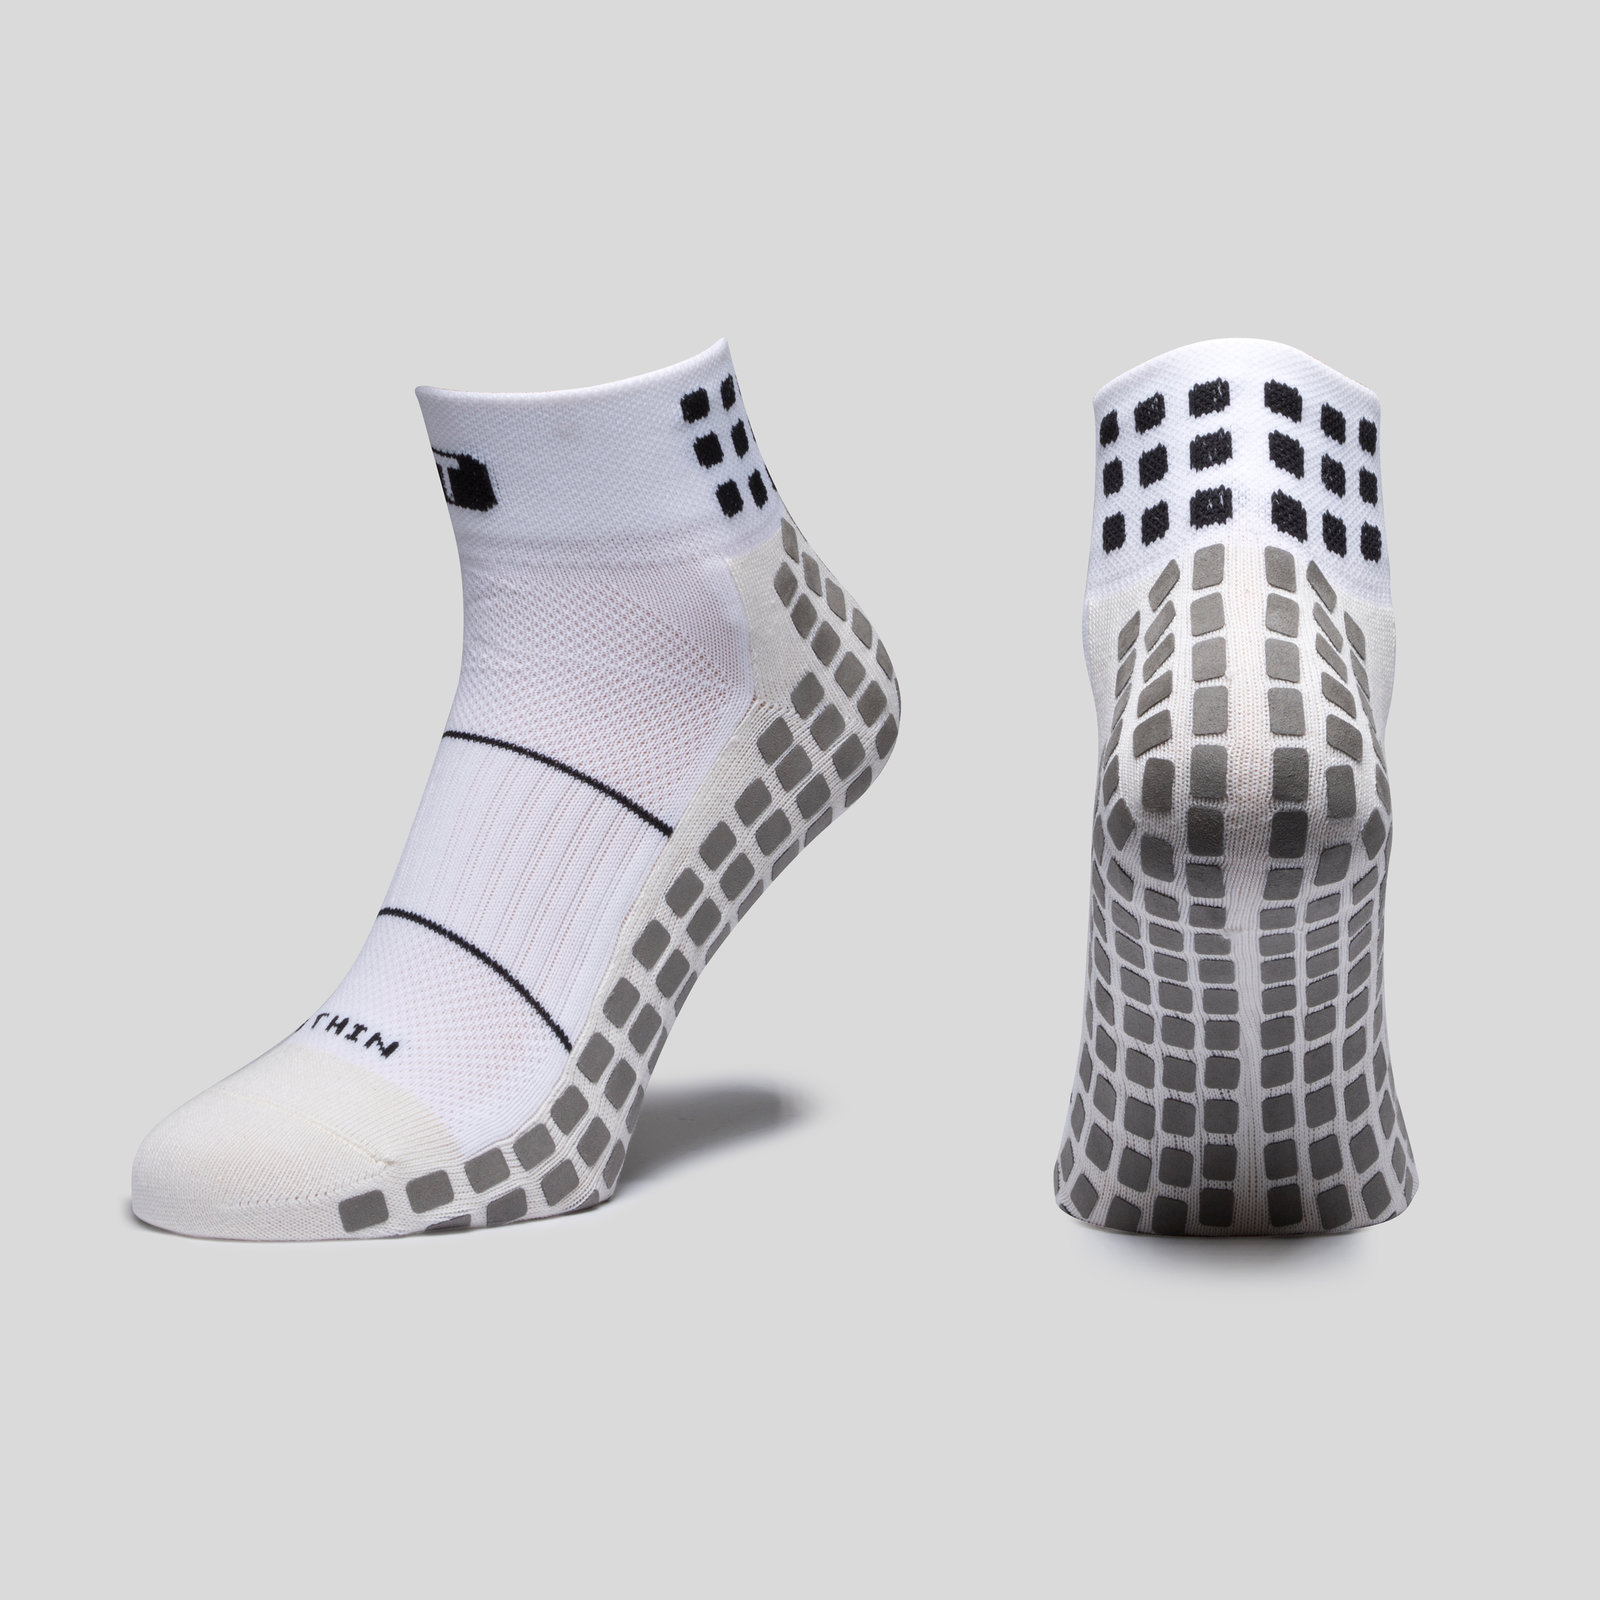 Image of 2.0 Ankle Length Socks